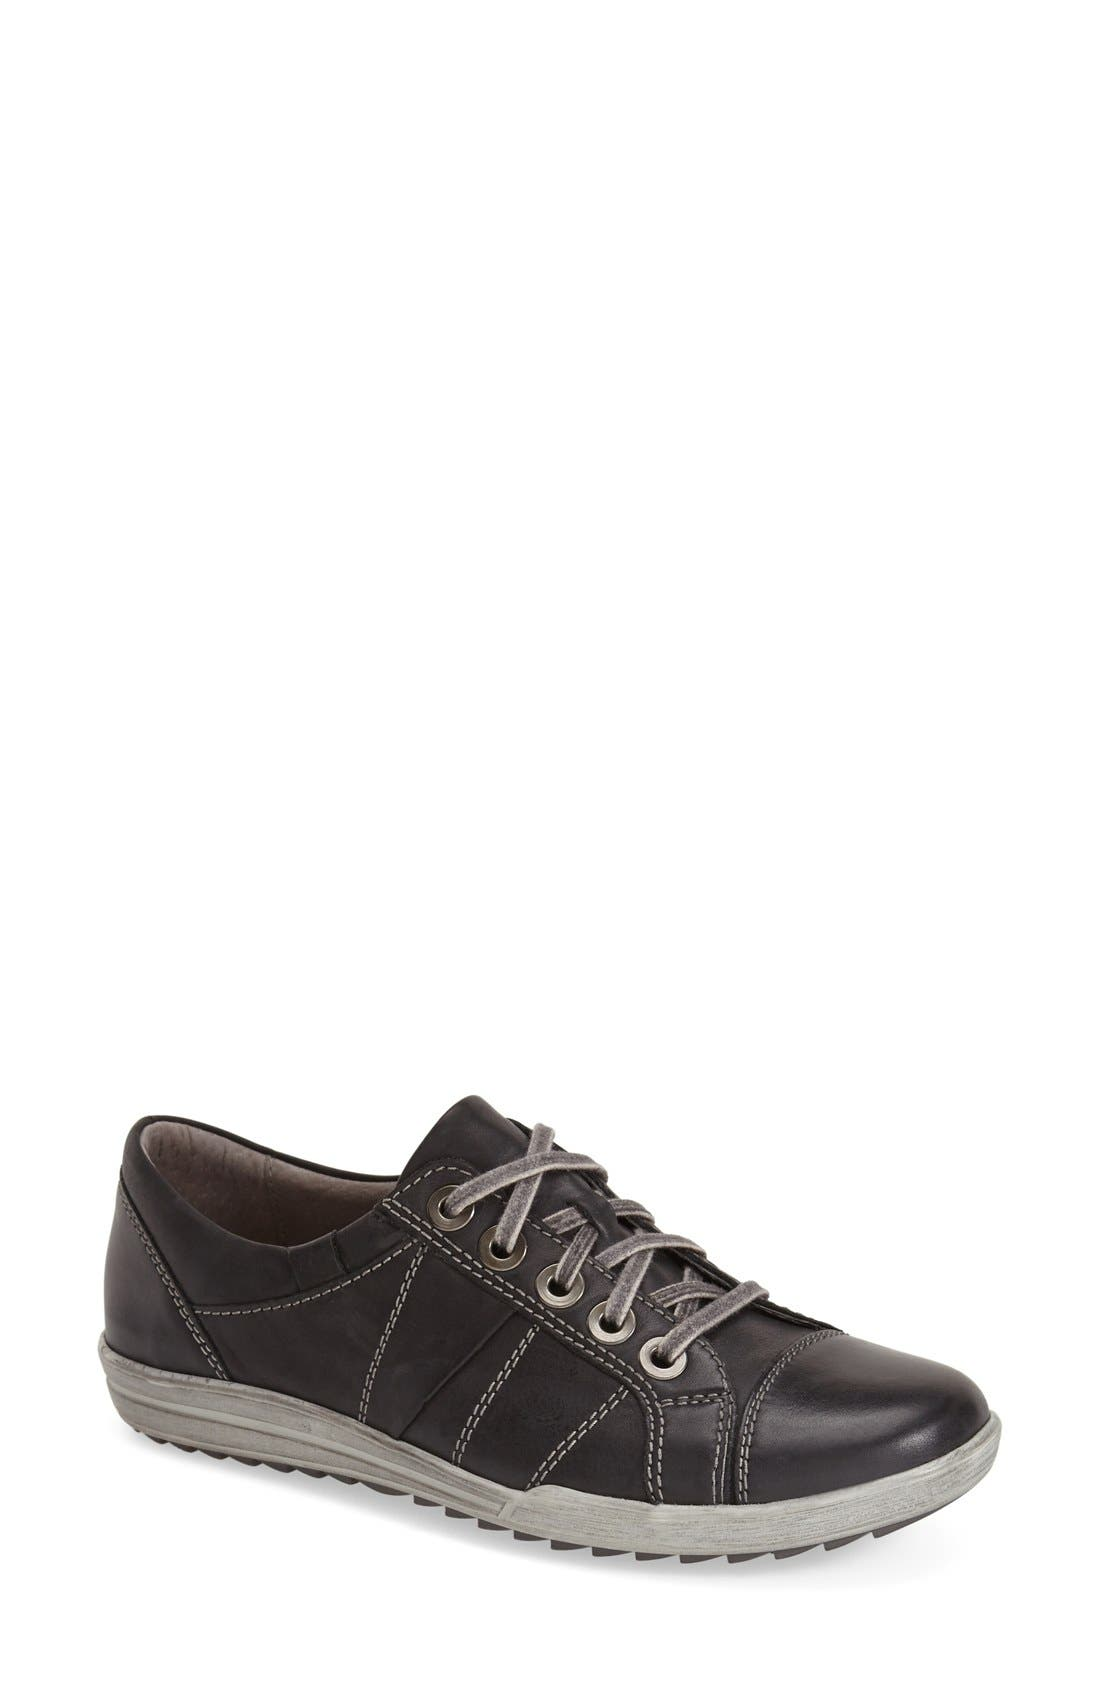 'Dany 05' Leather Sneaker,                             Main thumbnail 1, color,